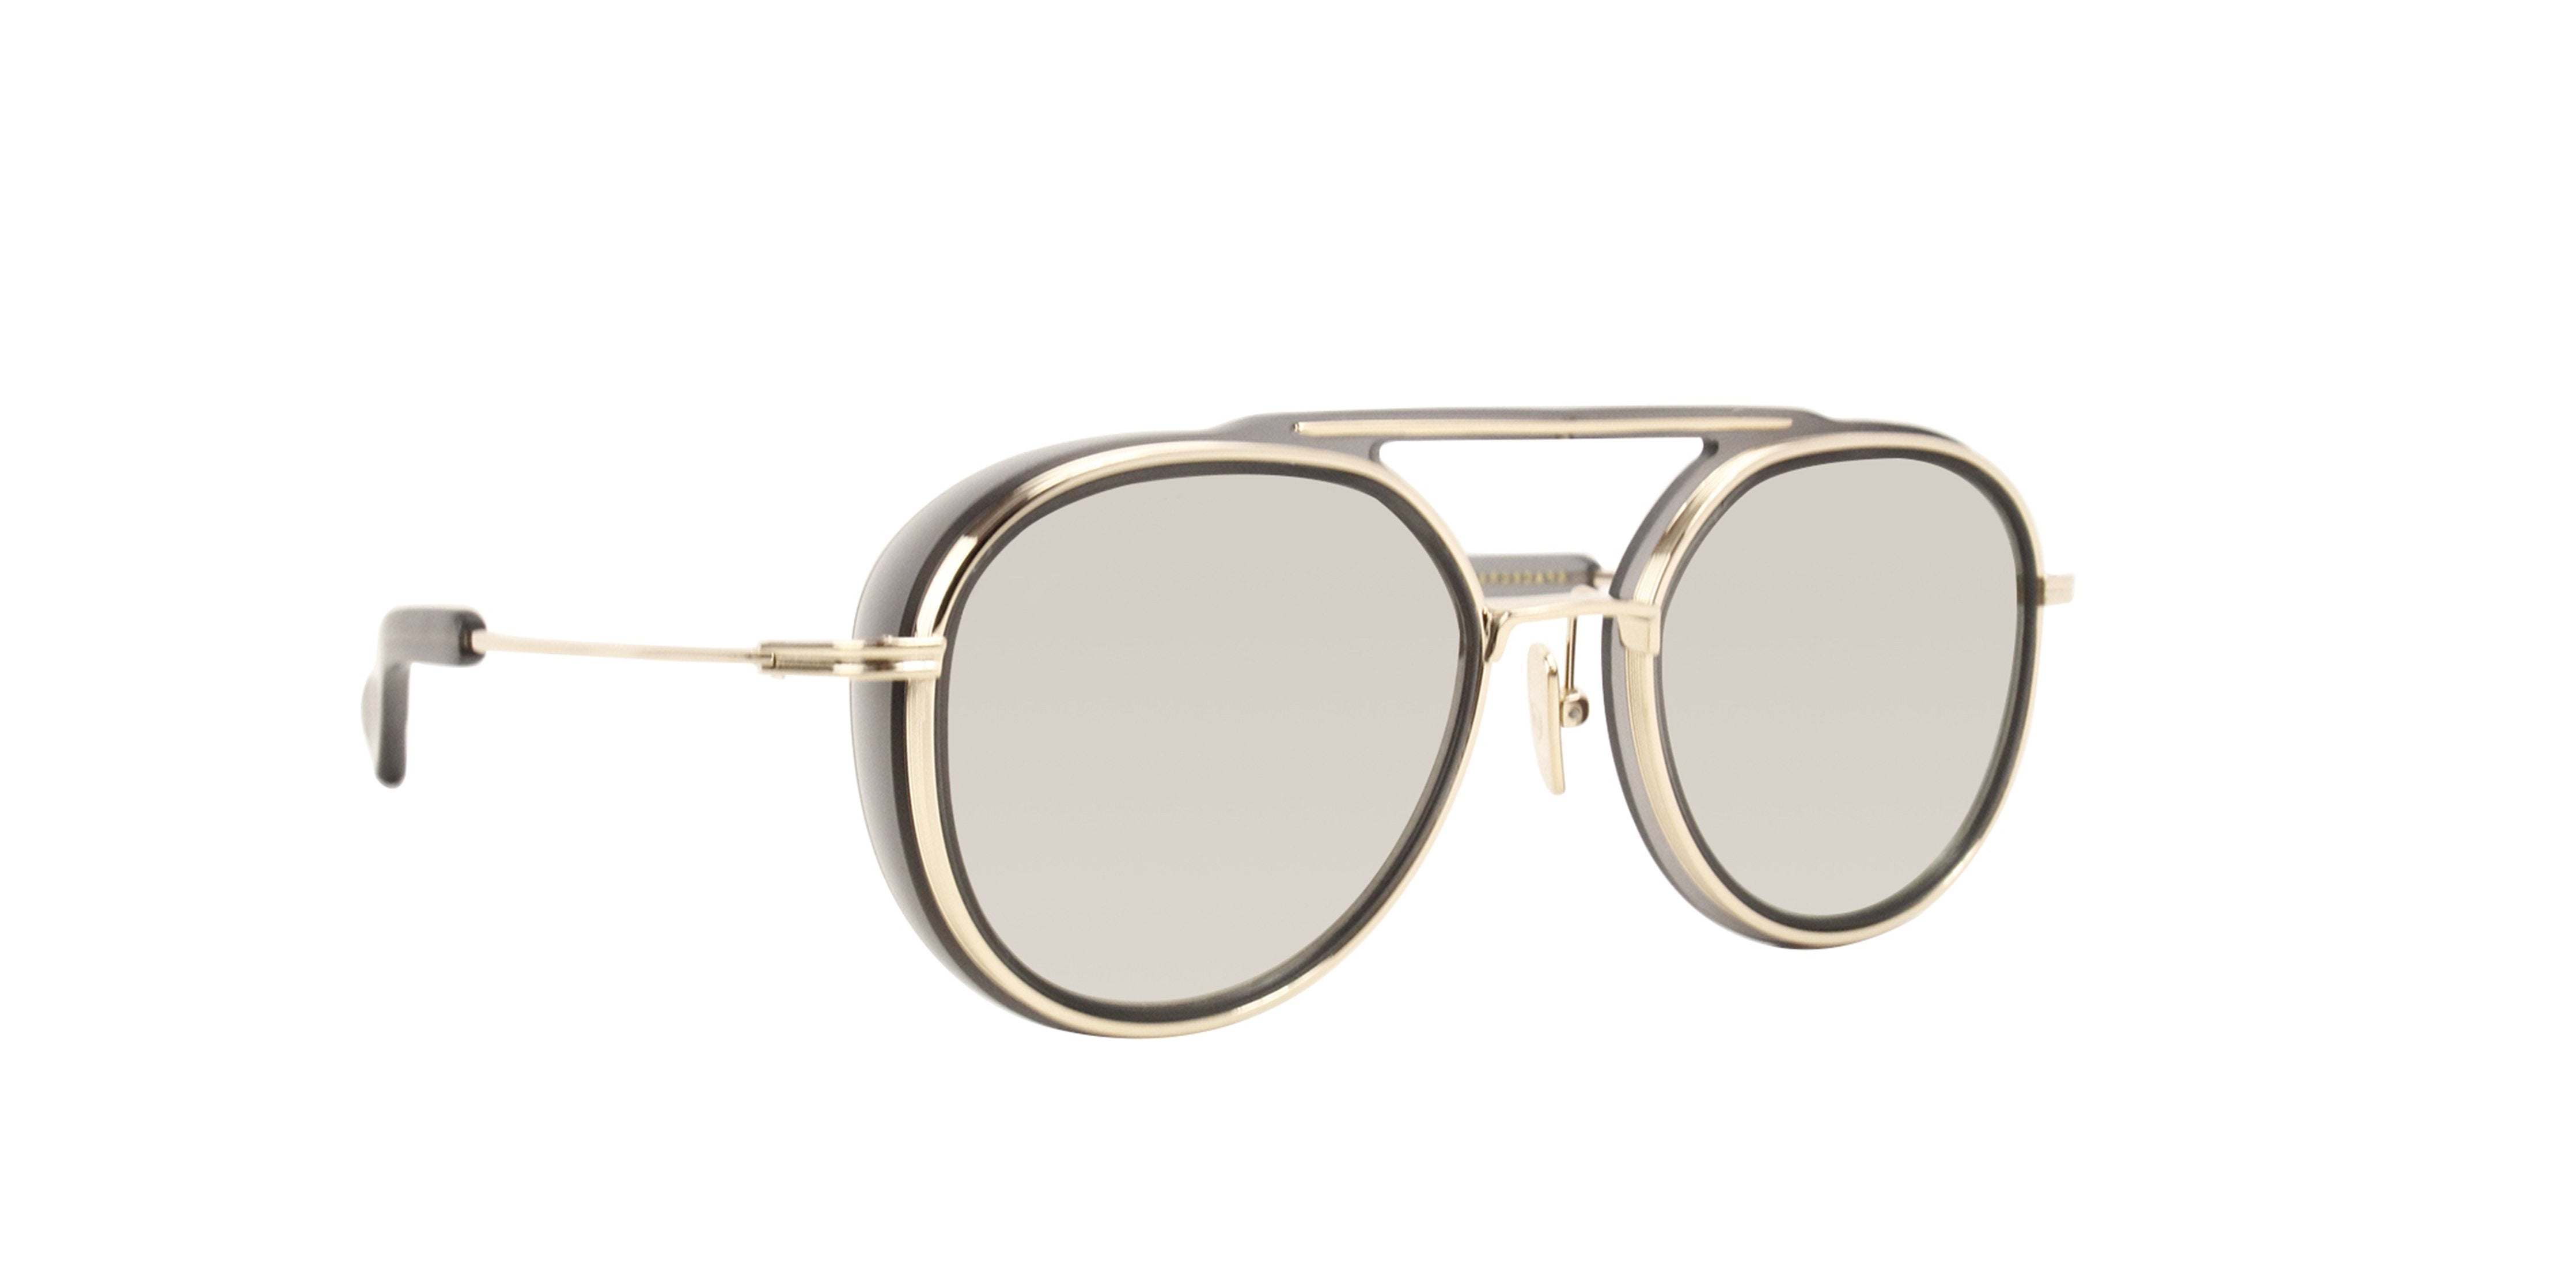 Dita - Spacecraft Matte Crystal Grey - White Gold Oval Men Sunglasses - 52mm-Sunglasses-Designer Eyes